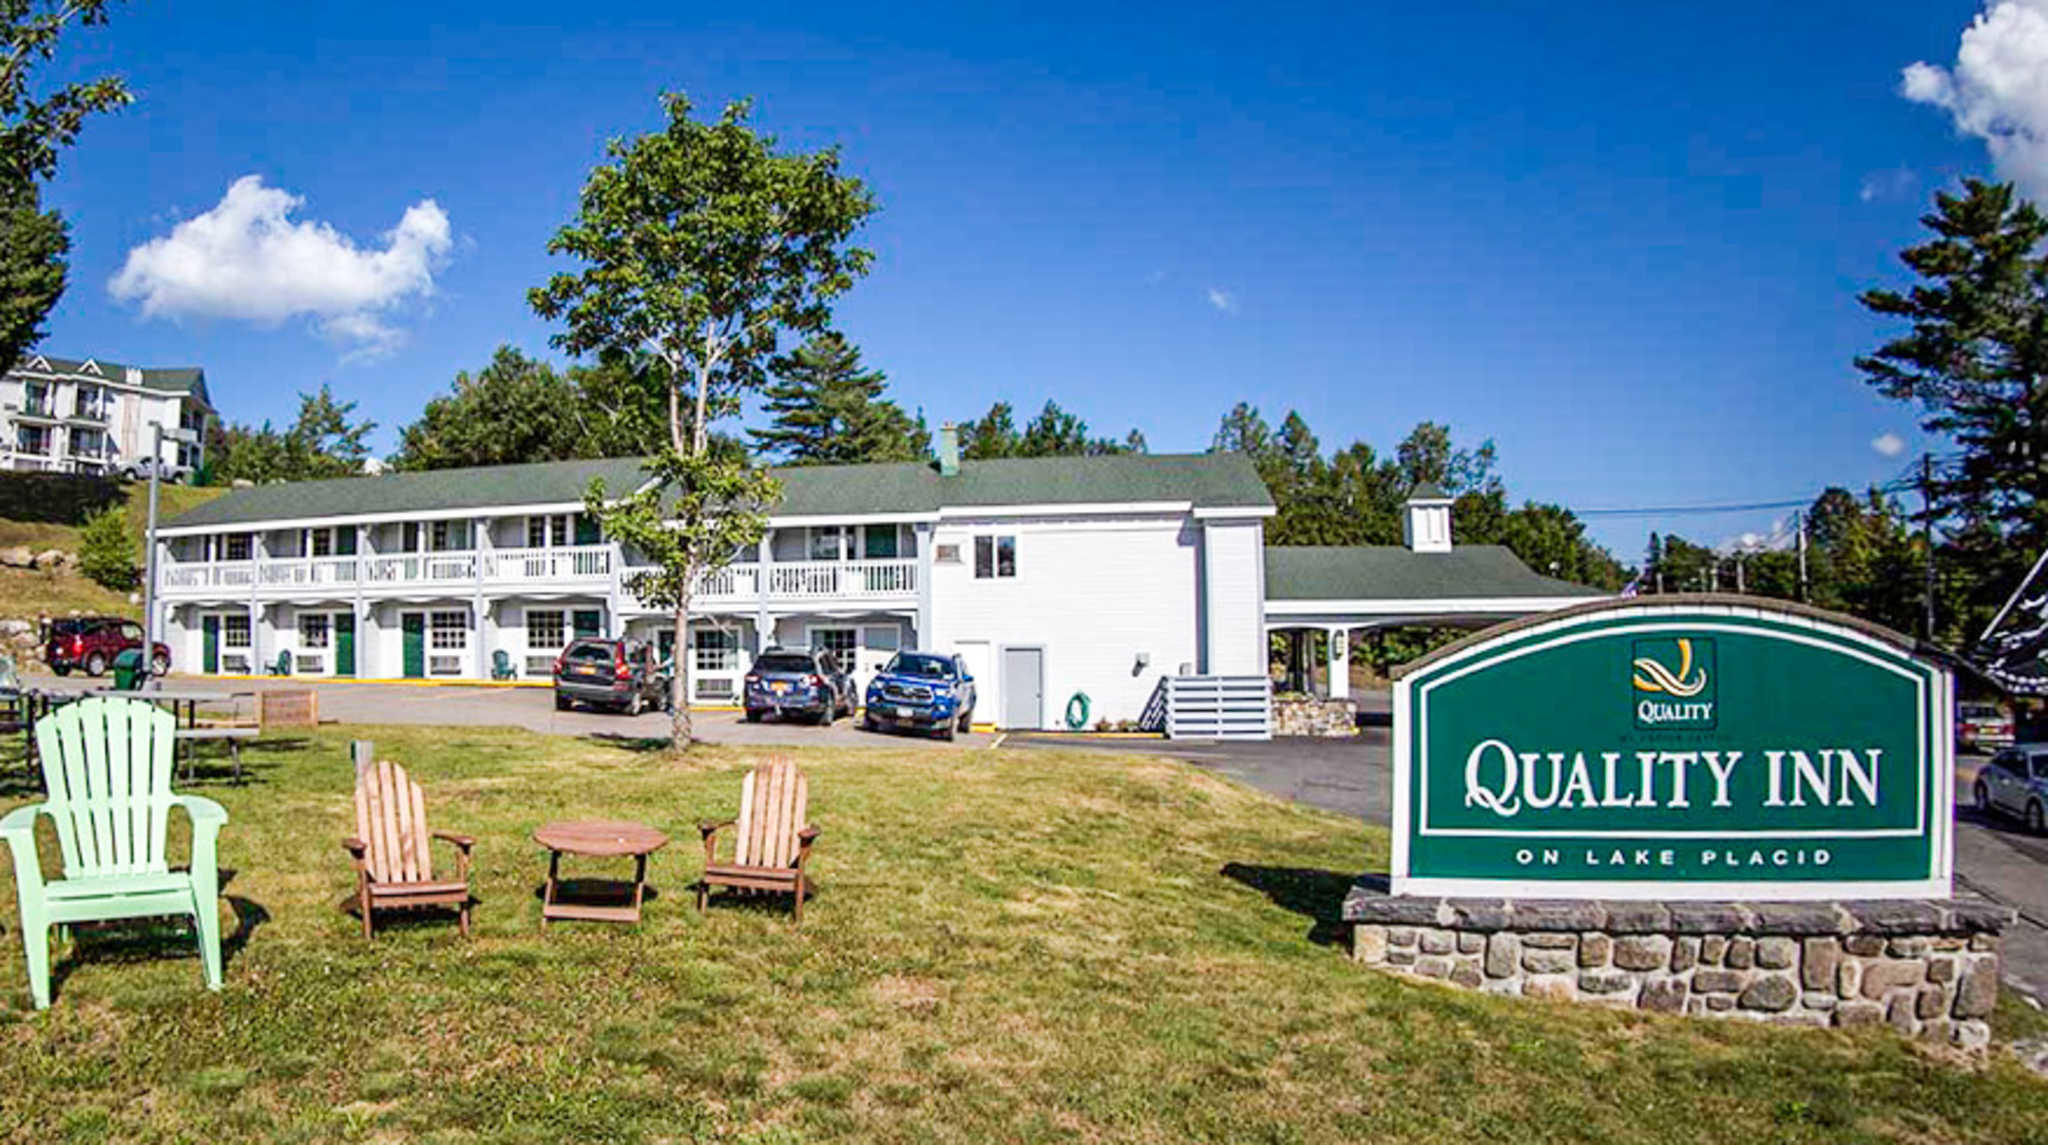 Quality inn on lake placid in lake placid ny 518 523 9 for Quality hotel